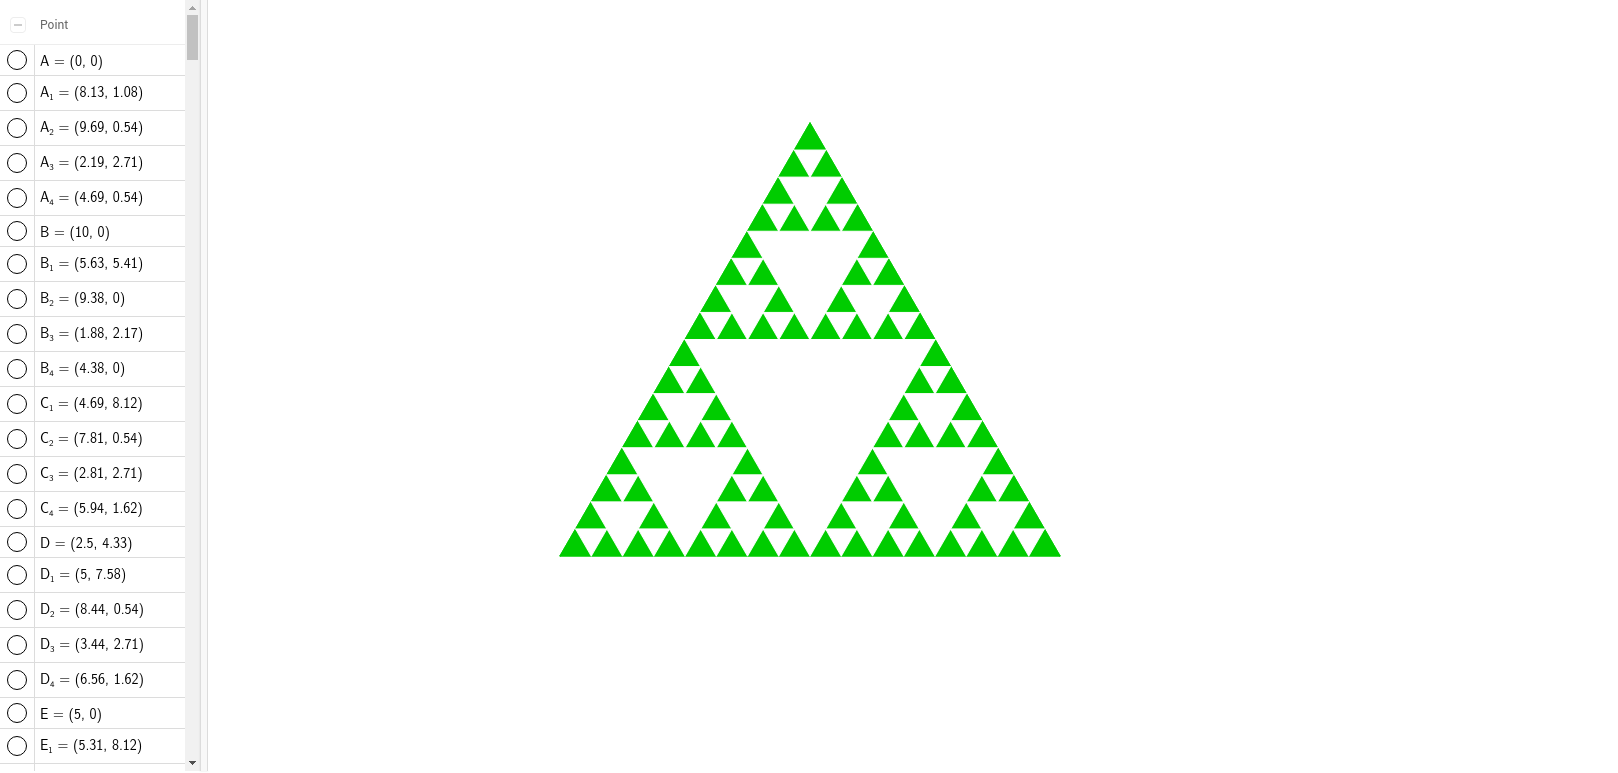 Worksheets Sierpinski Triangle Worksheet sierpinski christmas tree geogebra construct the three midsegments to subdivide it into four smaller congruent equilateral triangles and remove central one repeat step 2 with each of the